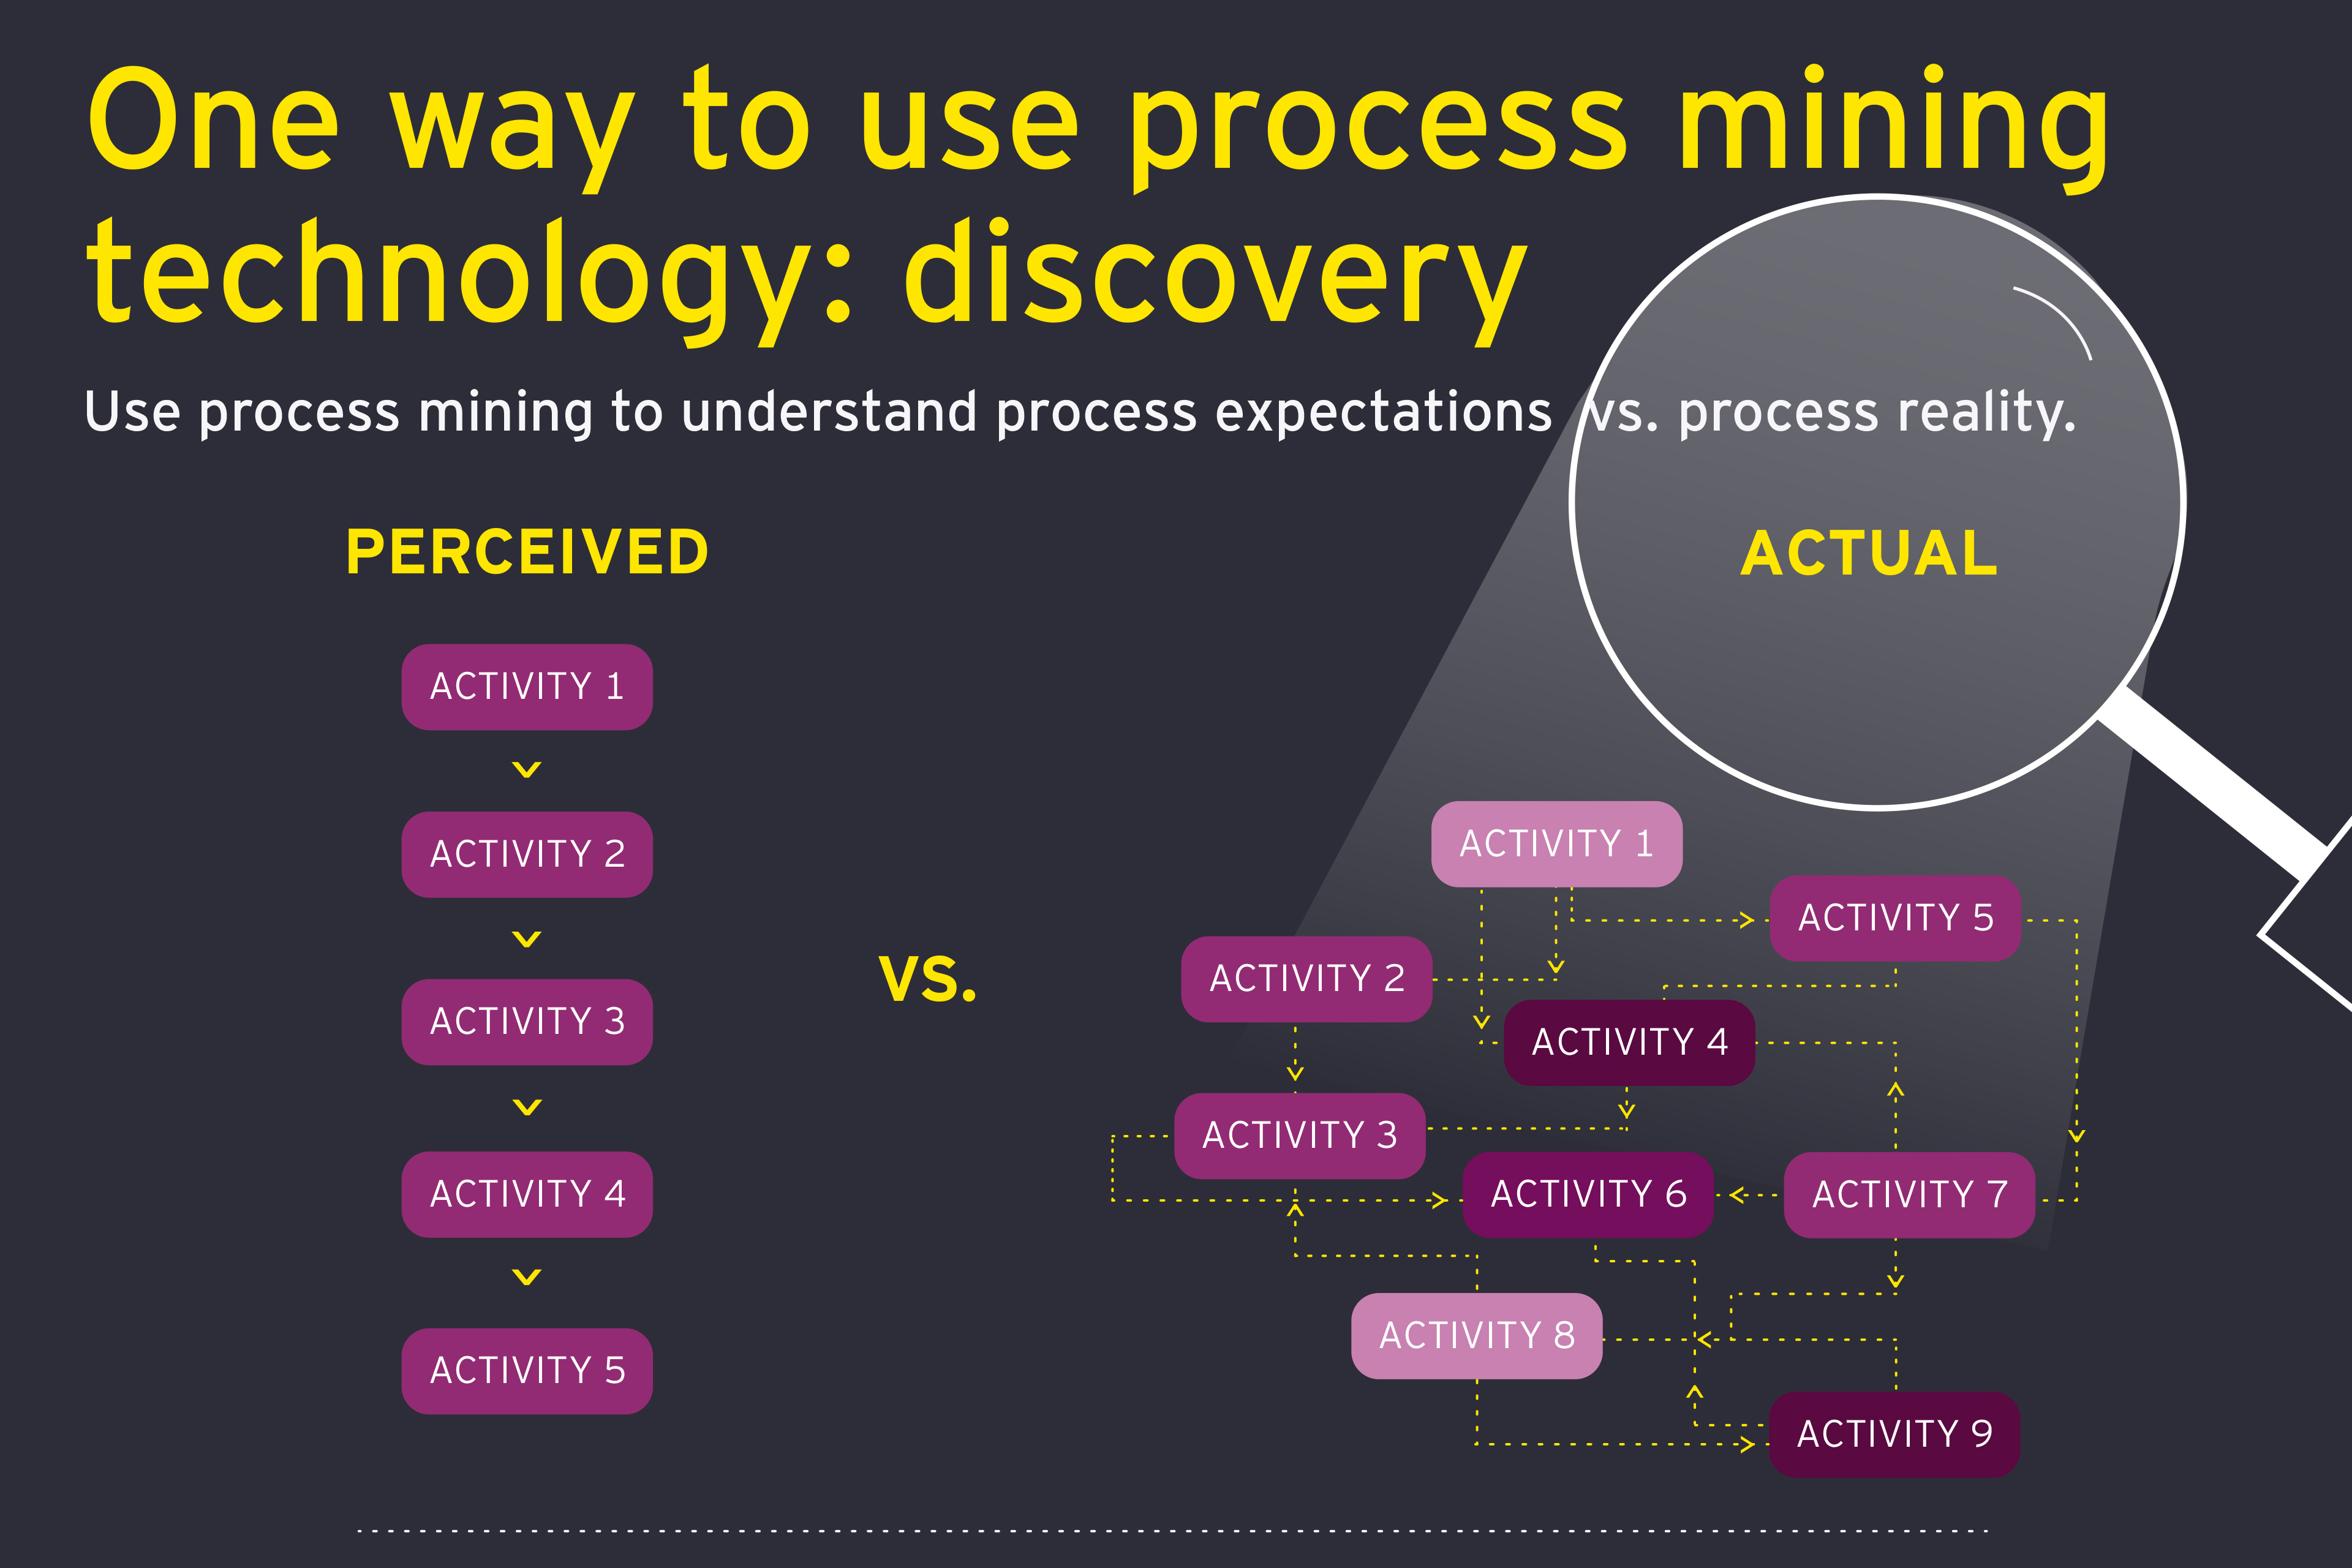 One way to use process mining technology: discovery [infographic]